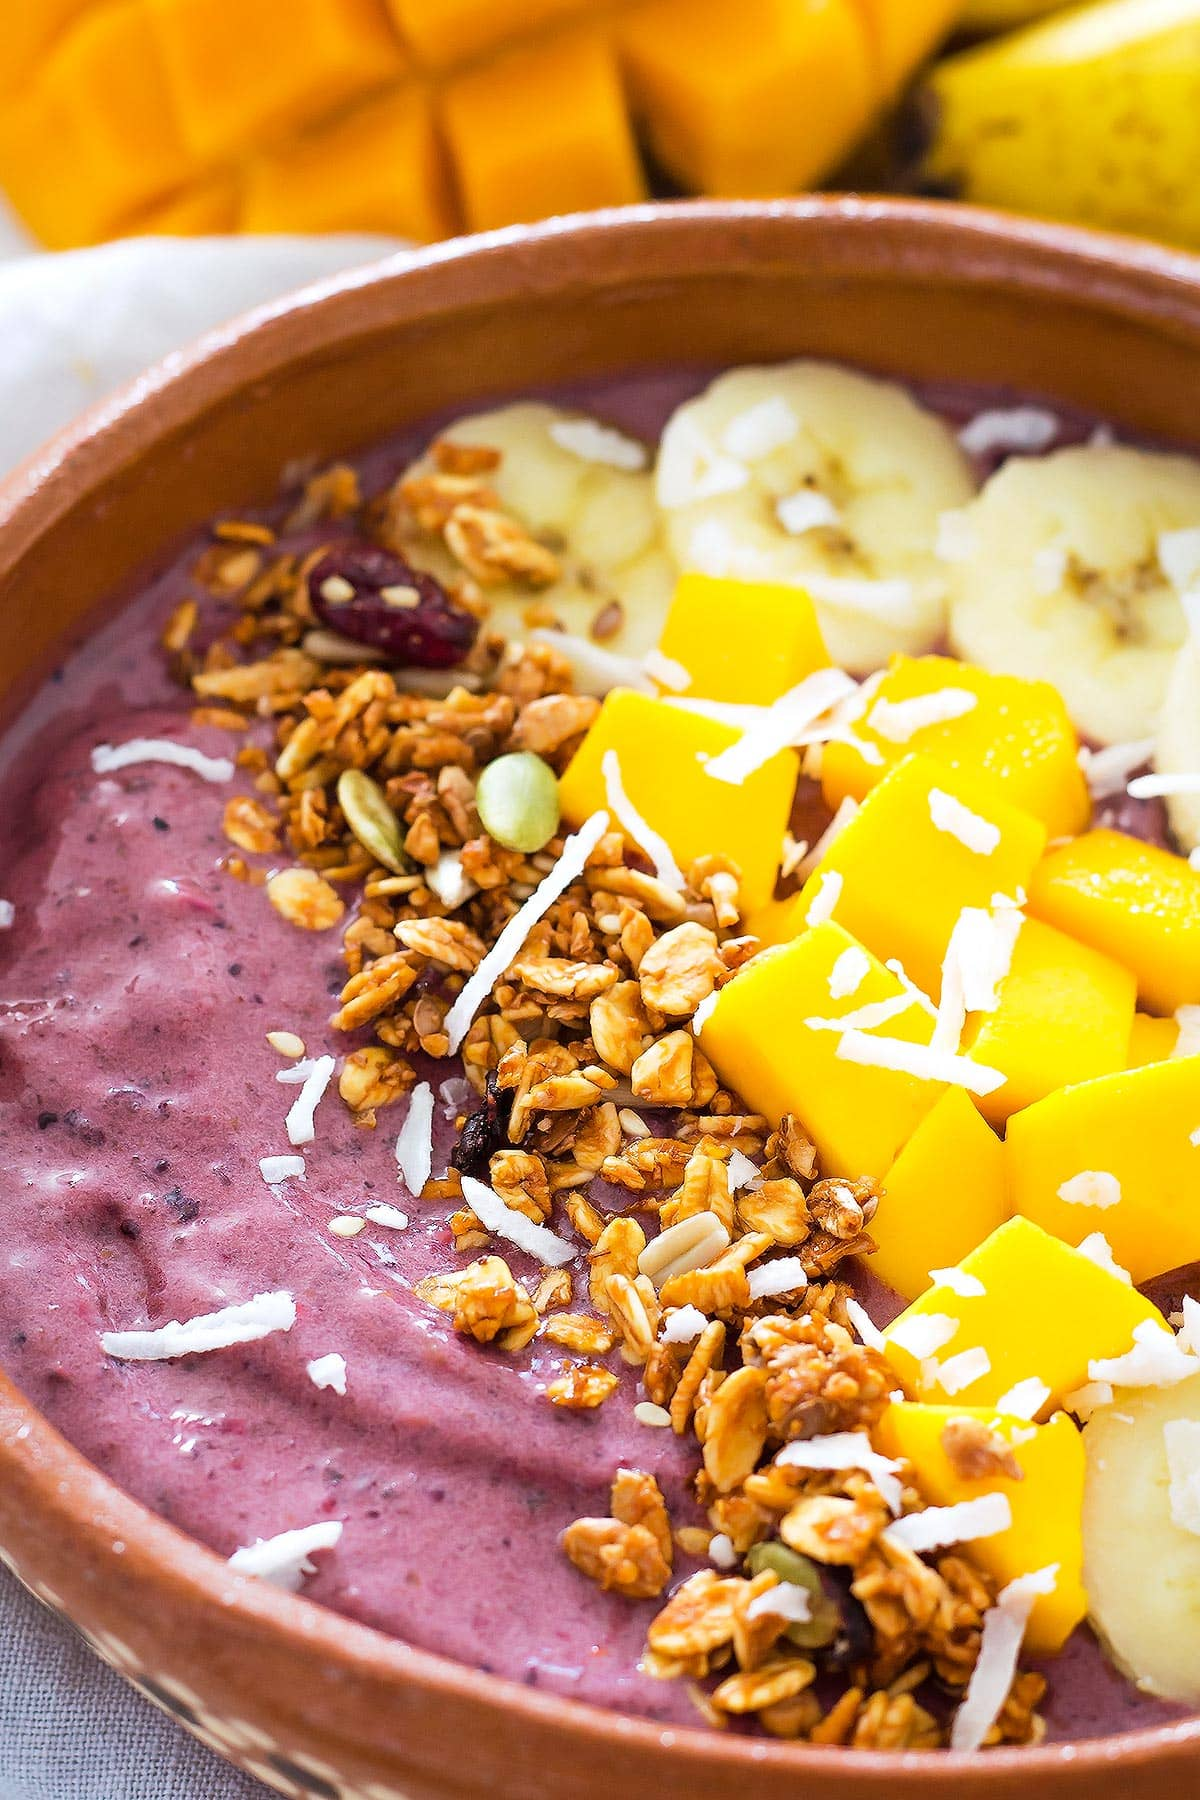 Purple Acai Berry Smoothie in a bowl with banana, mango, granola, coconut topping